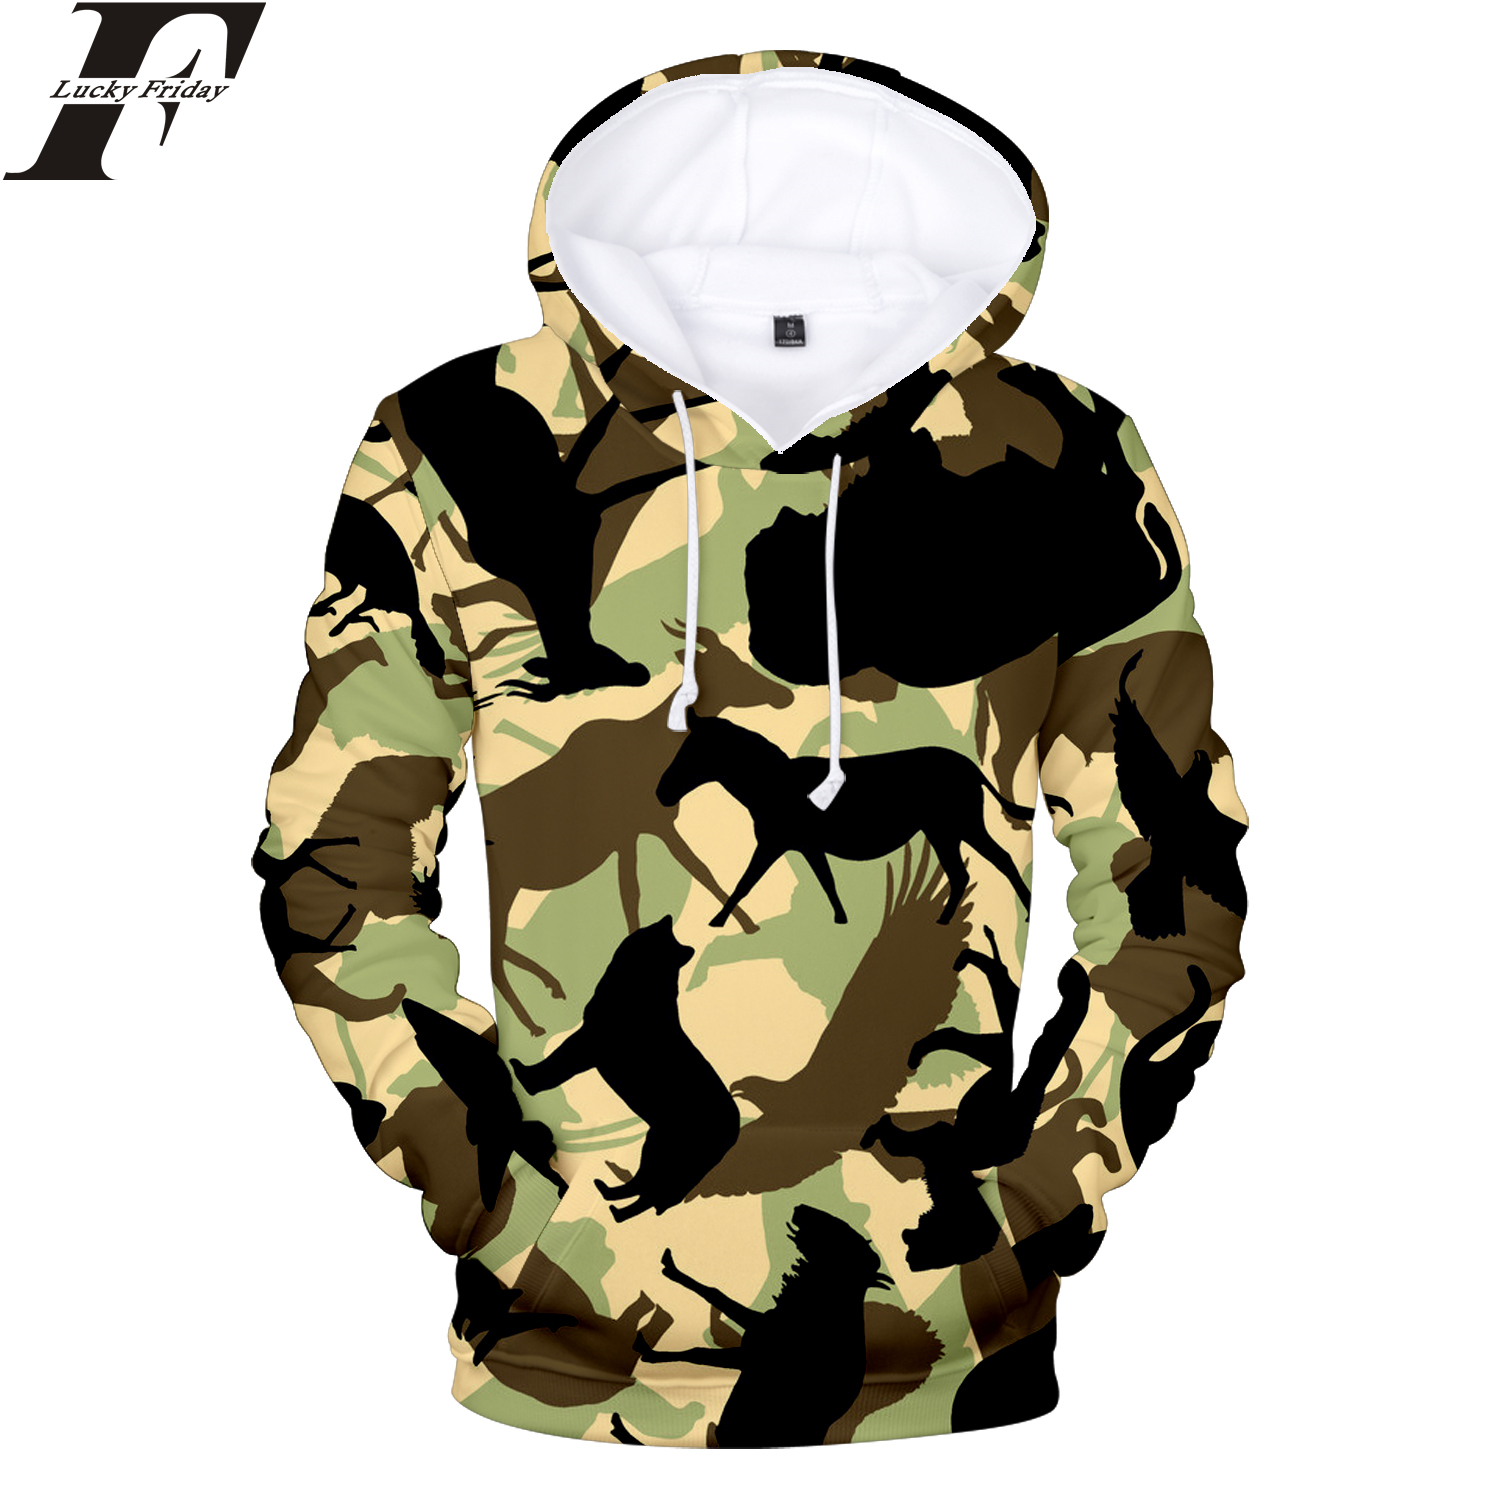 LUCKYFRIDAYF 2018 Camouflage Style 3D Hoodies Sweatshirt Women/Men Hoodies Fashion Hoodies Patchwork Style Casual Clothes